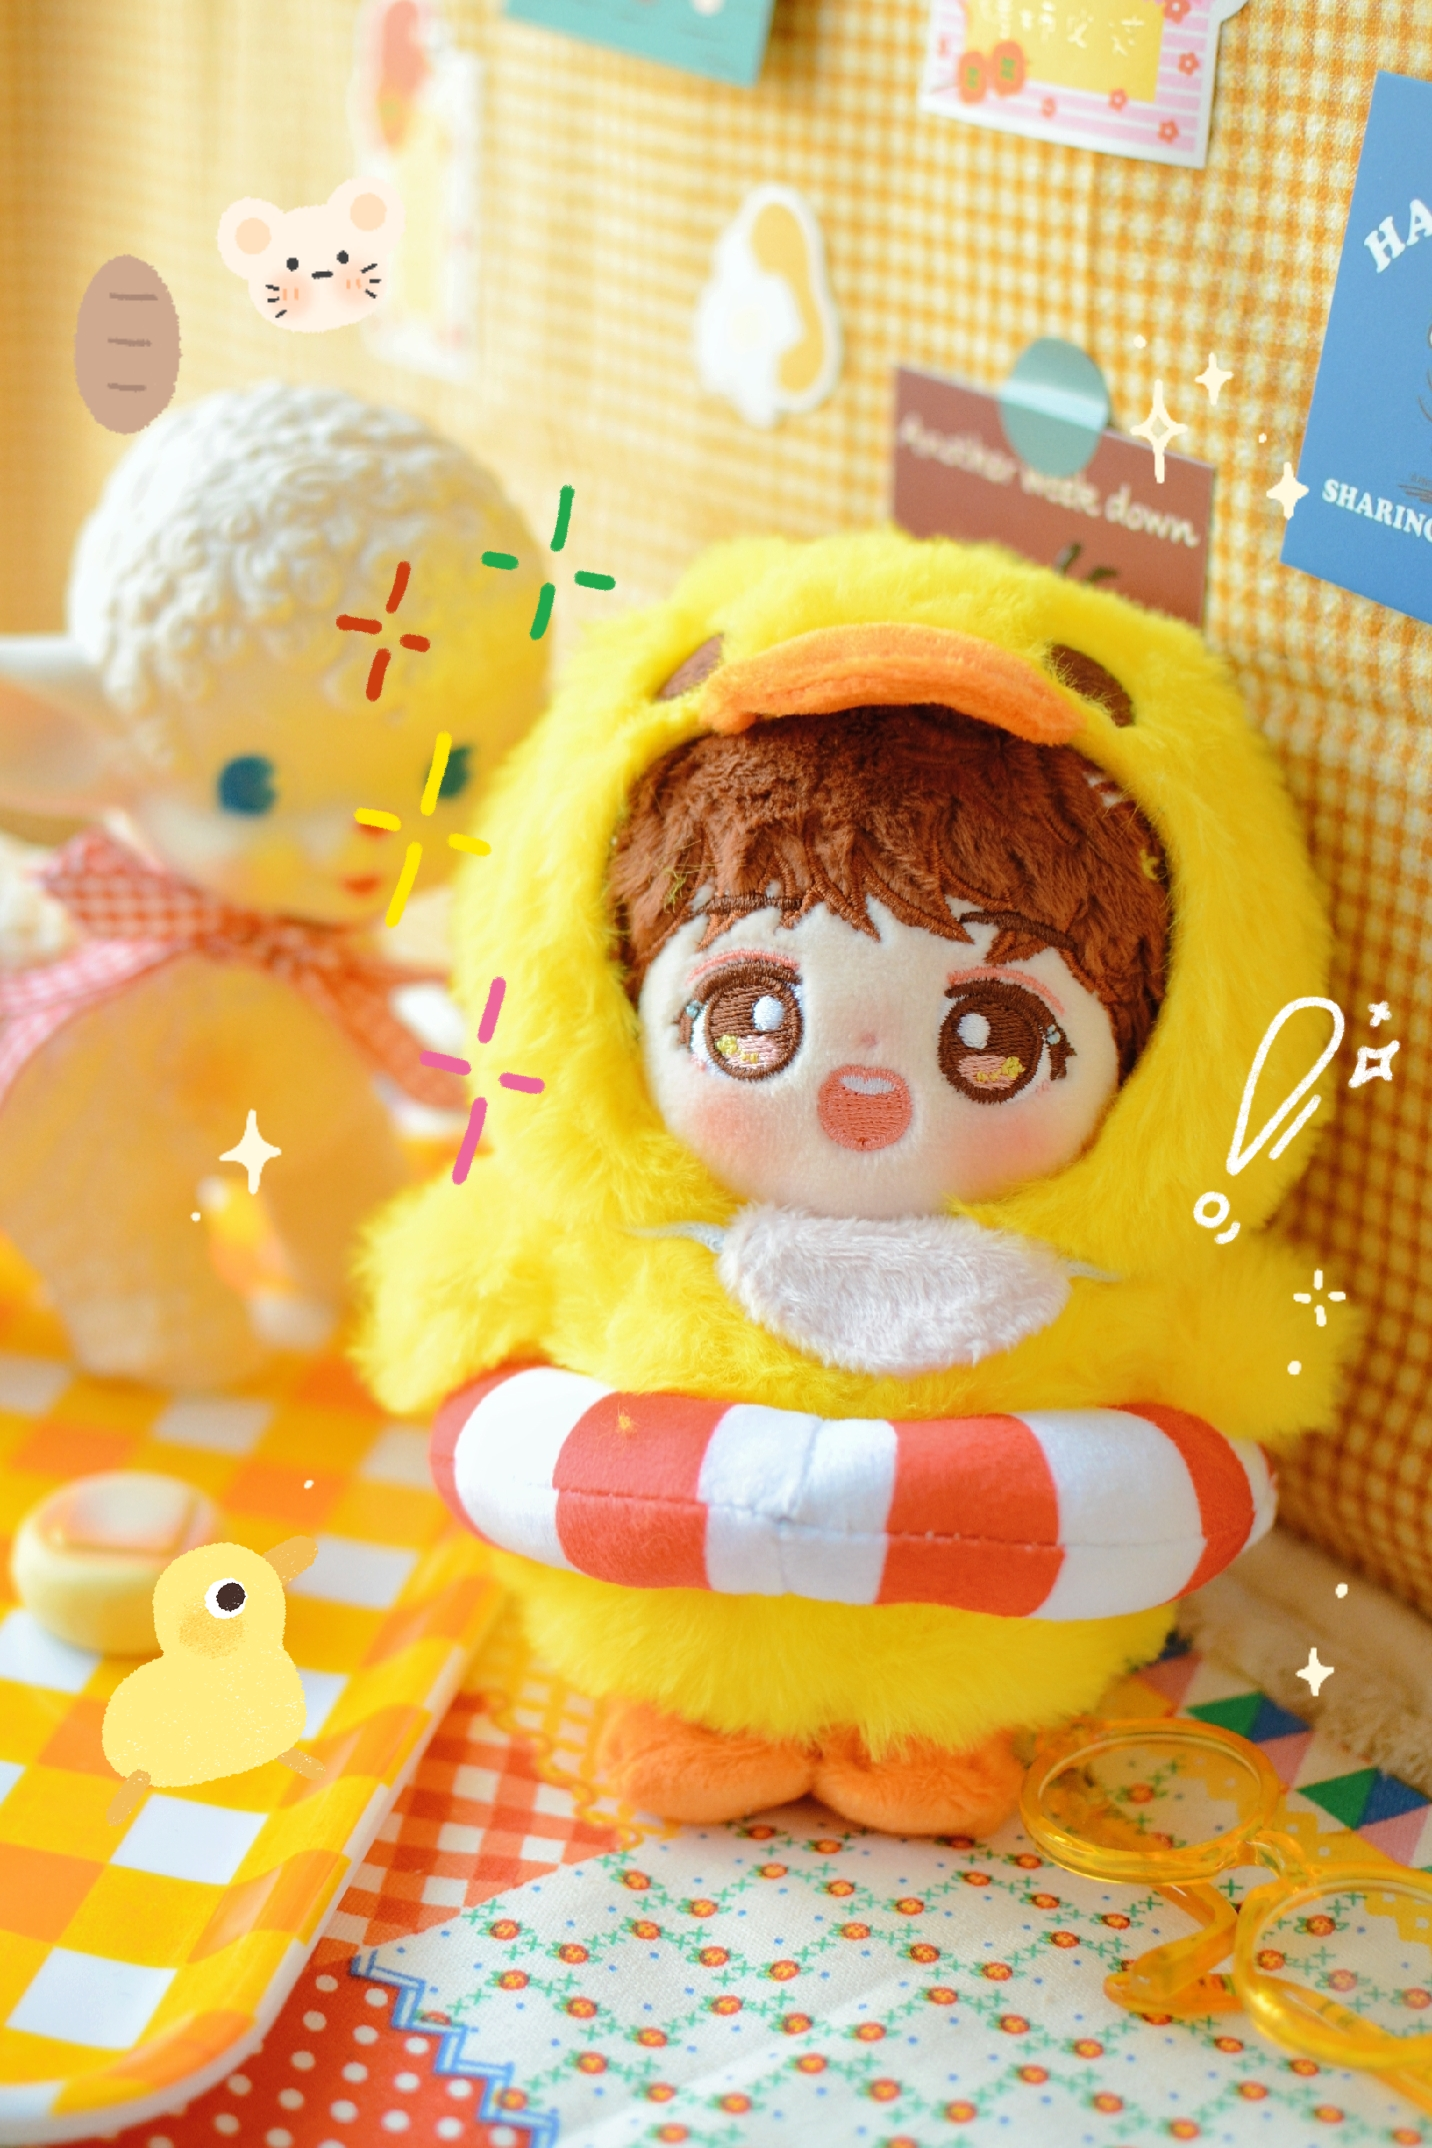 [MYKPOP]Doll's Clothes: Yellow Duck Hooded Pajama / Bodysuit For 15cm Dolls(without Doll) KPOP Fans Collection SA20051901